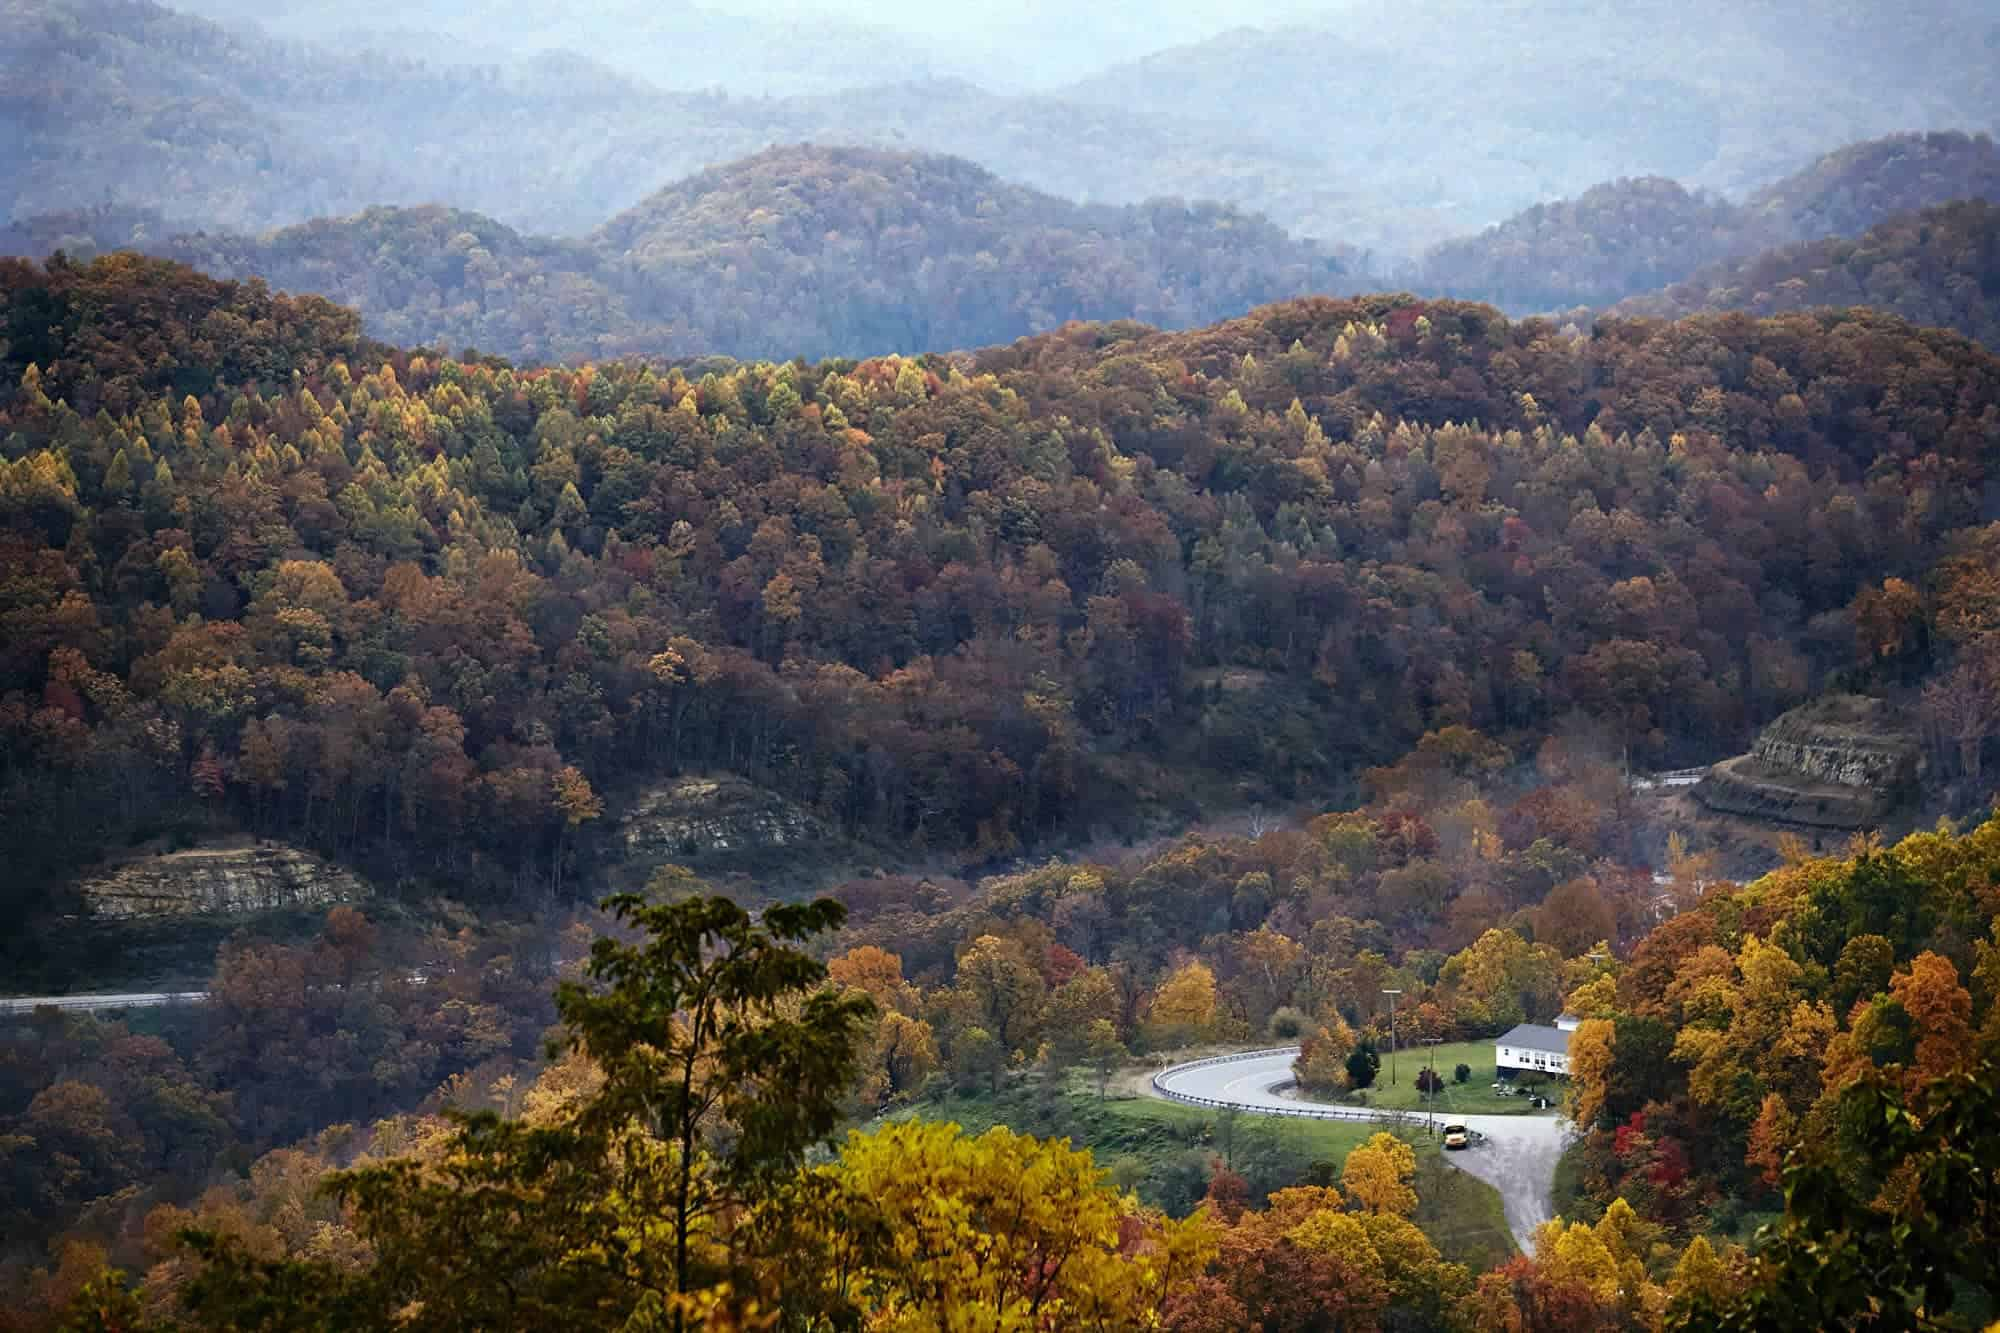 A view from the Appalachian Pine Mountain, between Cumberland and Whitesburg, Kentucky. Photo by Shawn Poynter